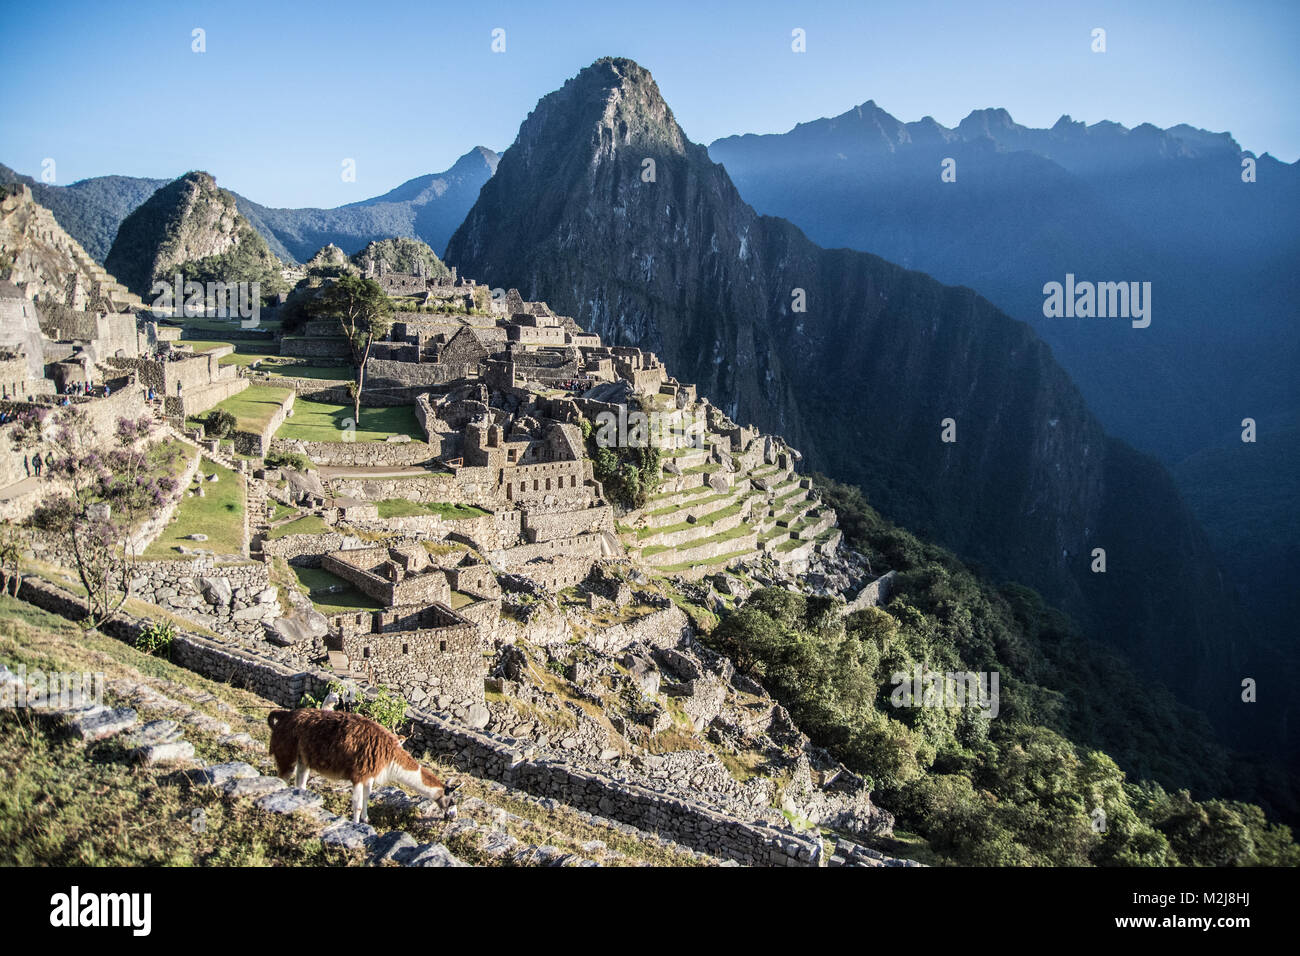 Morning in Machu Picchu - Stock Image